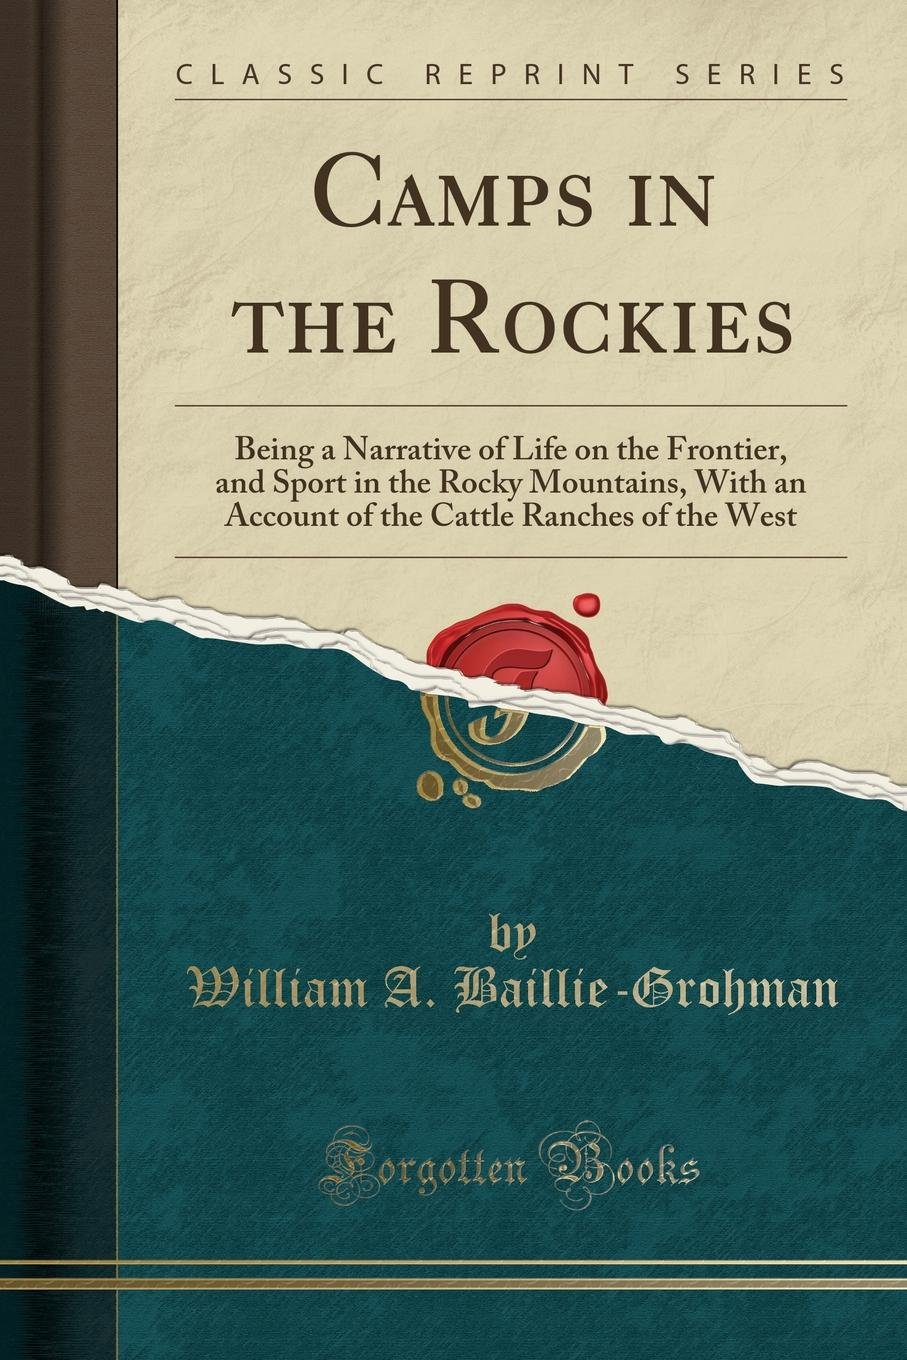 Download Camps in the Rockies: Being a Narrative of Life on the Frontier, and Sport in the Rocky Mountains, With an Account of the Cattle Ranches of the West (Classic Reprint) ebook